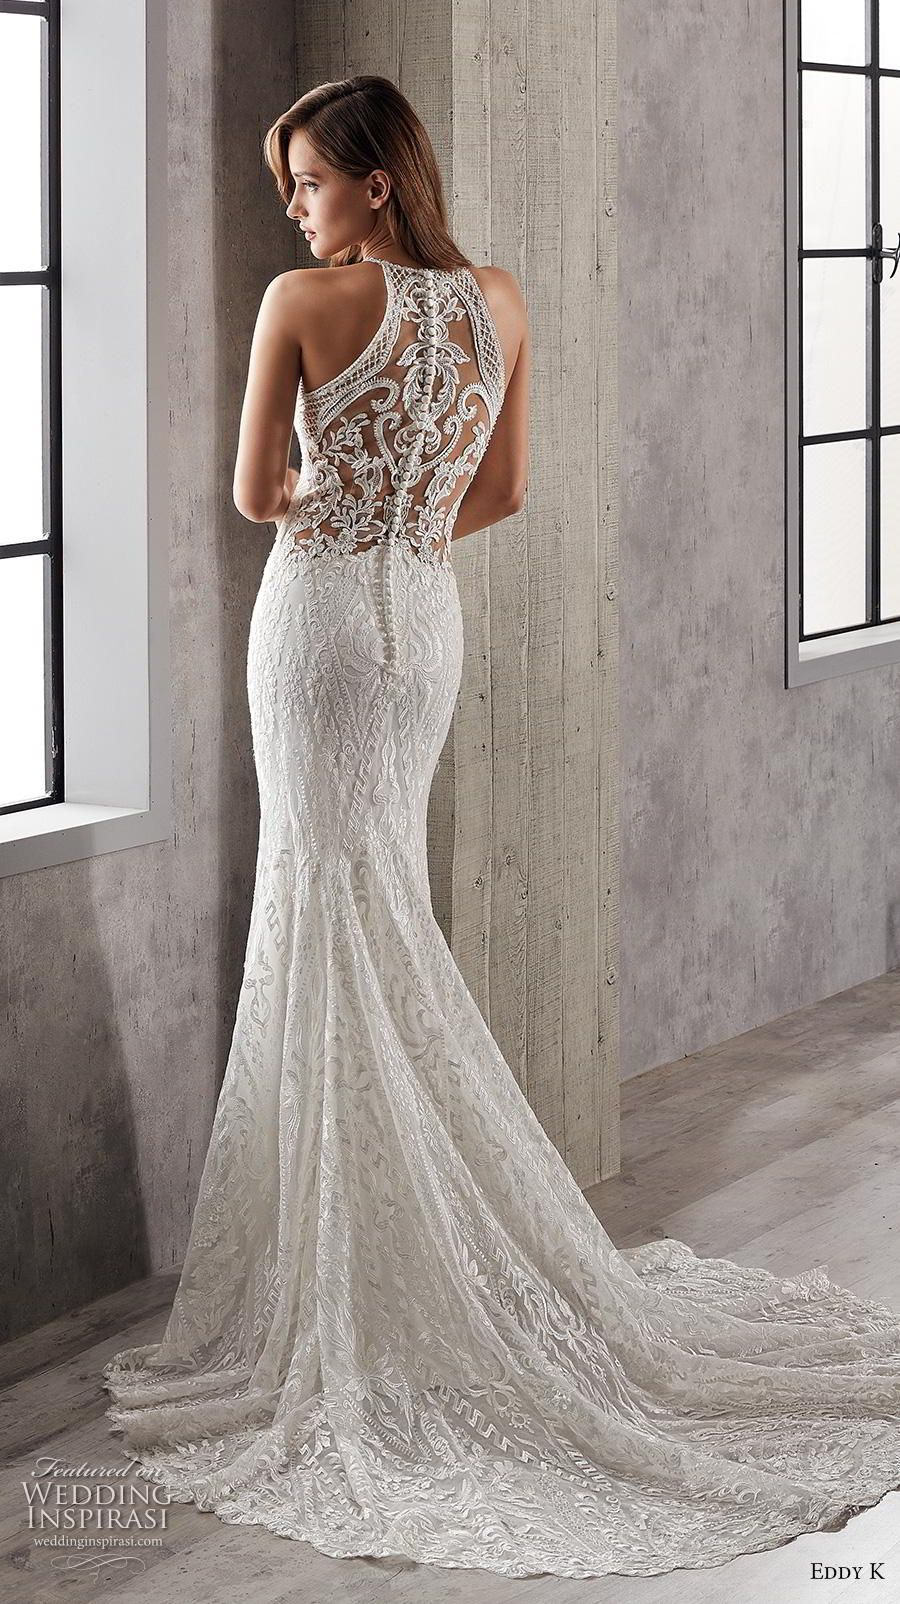 Elegant fitted wedding dresses  Eddy K Couture  Wedding Dresses  Wedding   Pinterest